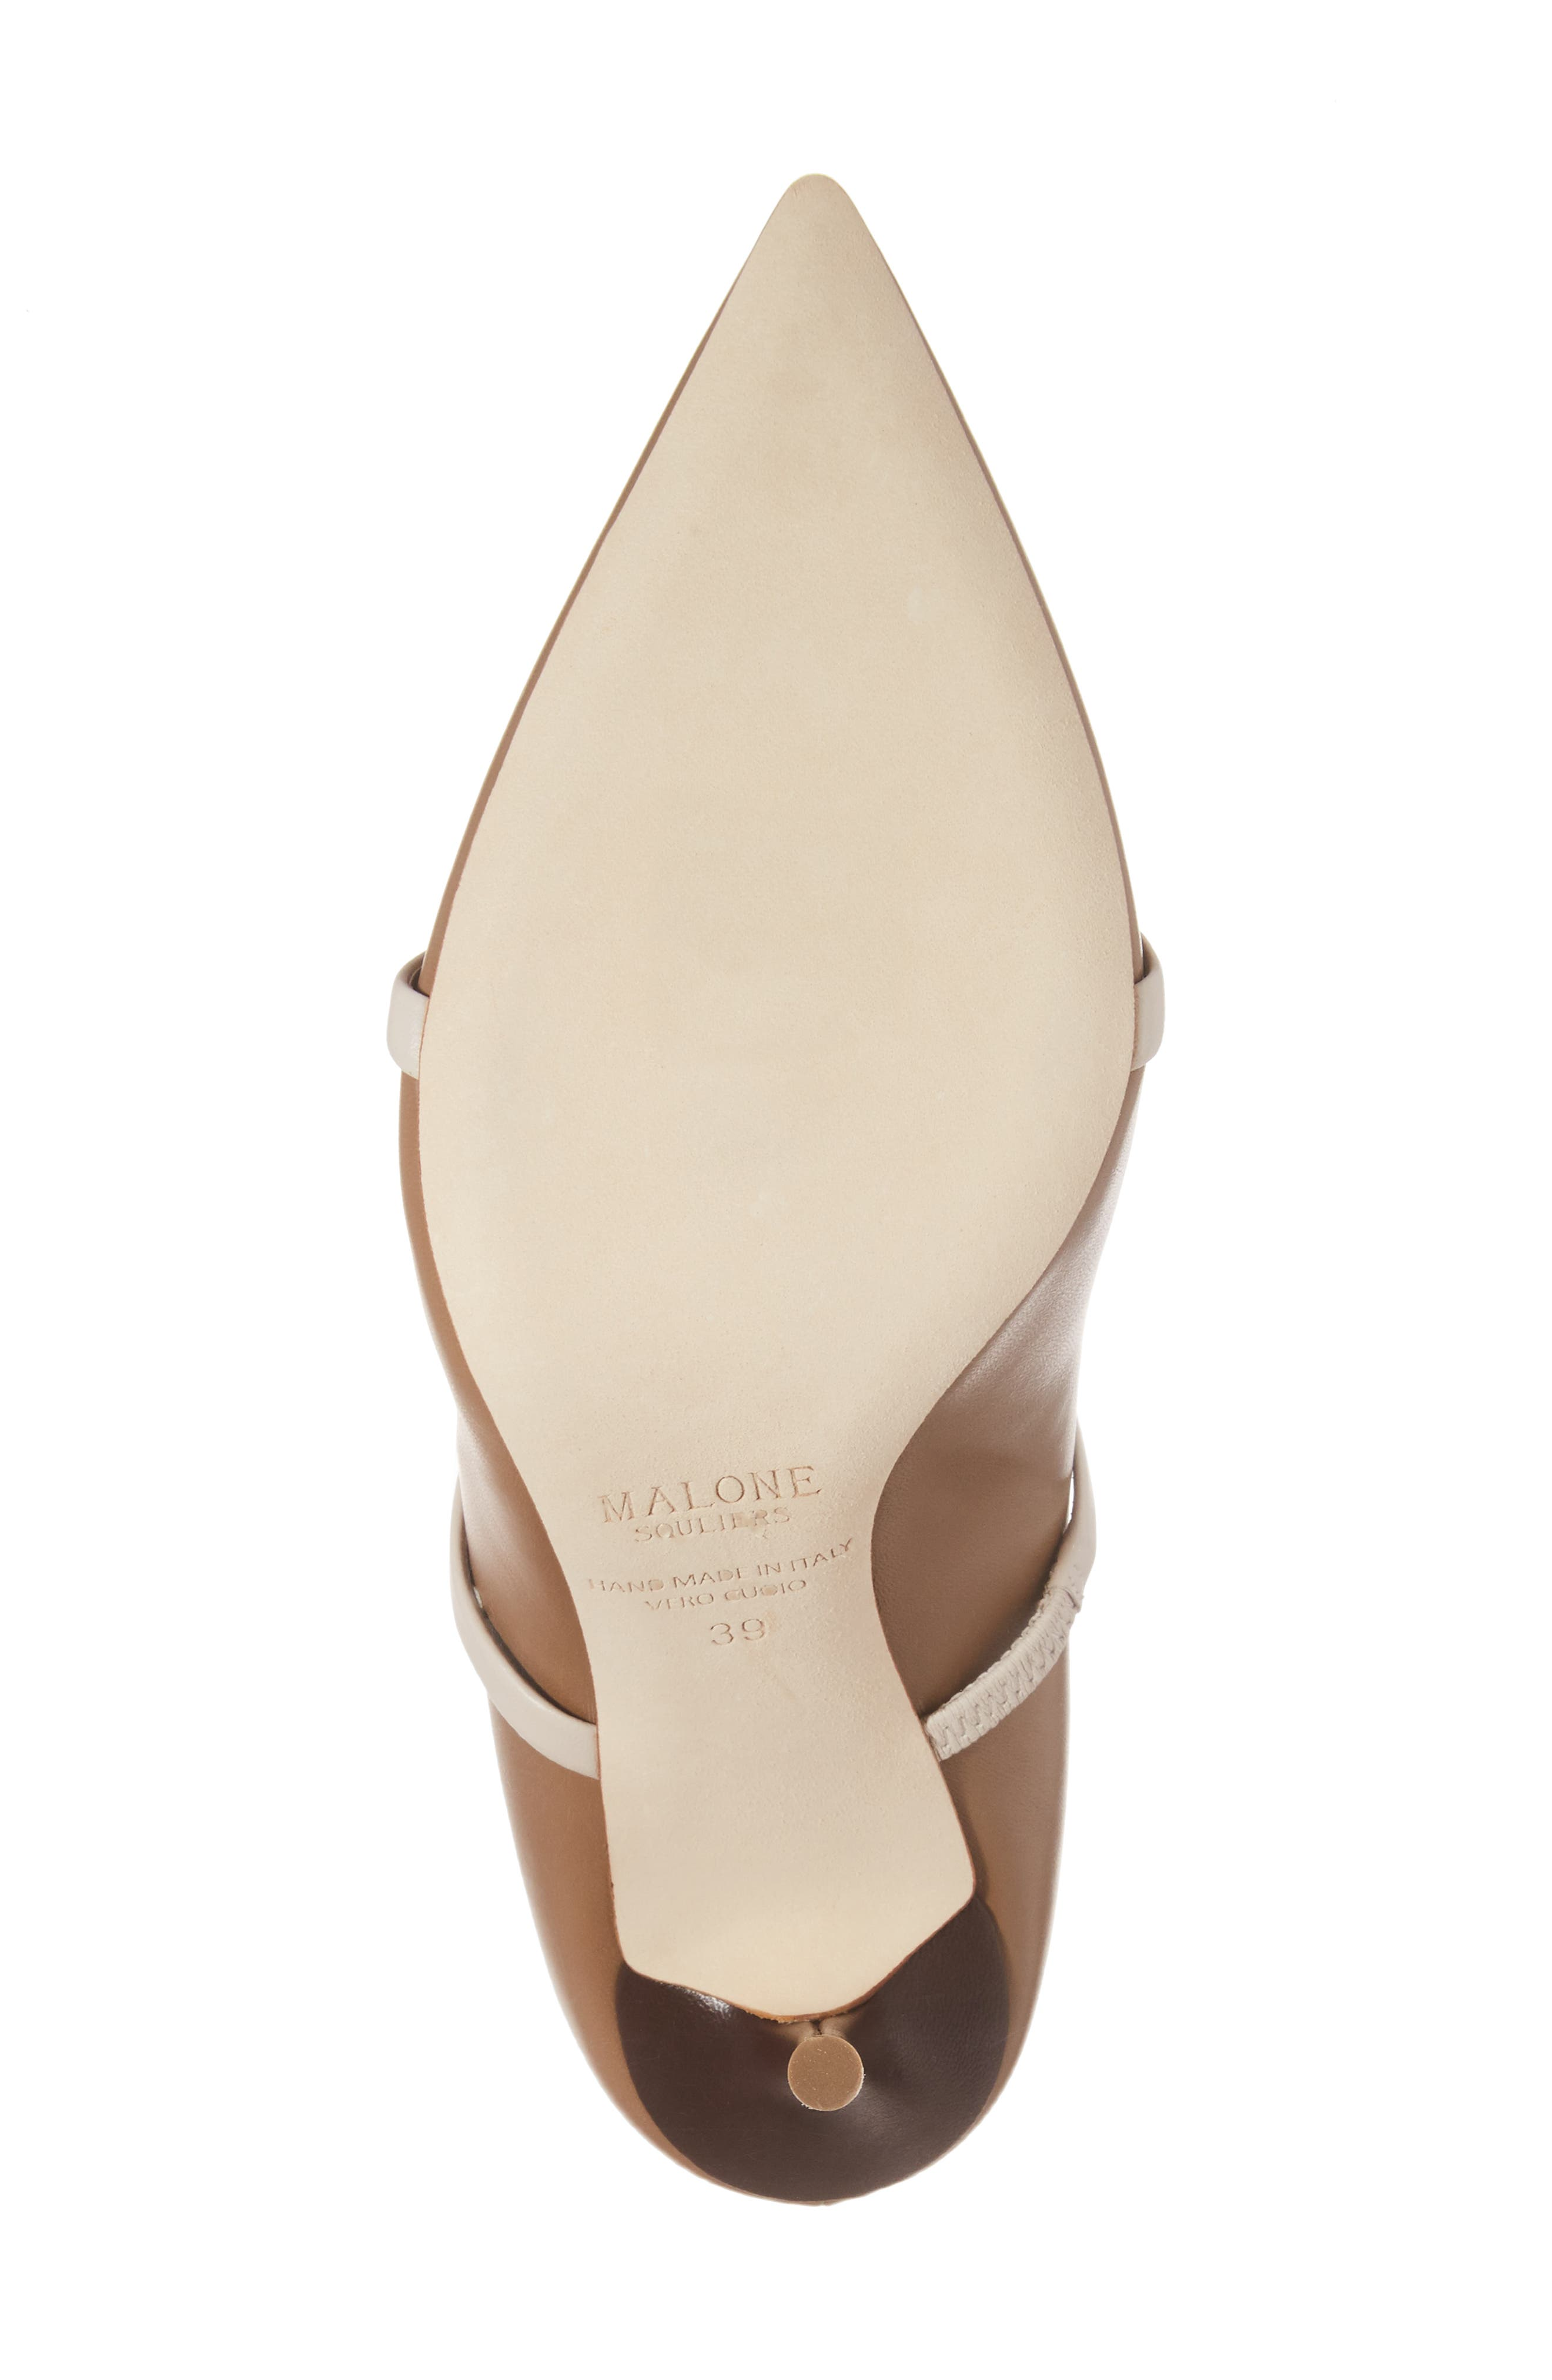 Maureen Double Band Pump,                             Alternate thumbnail 6, color,                             Chocolate/ White Leather